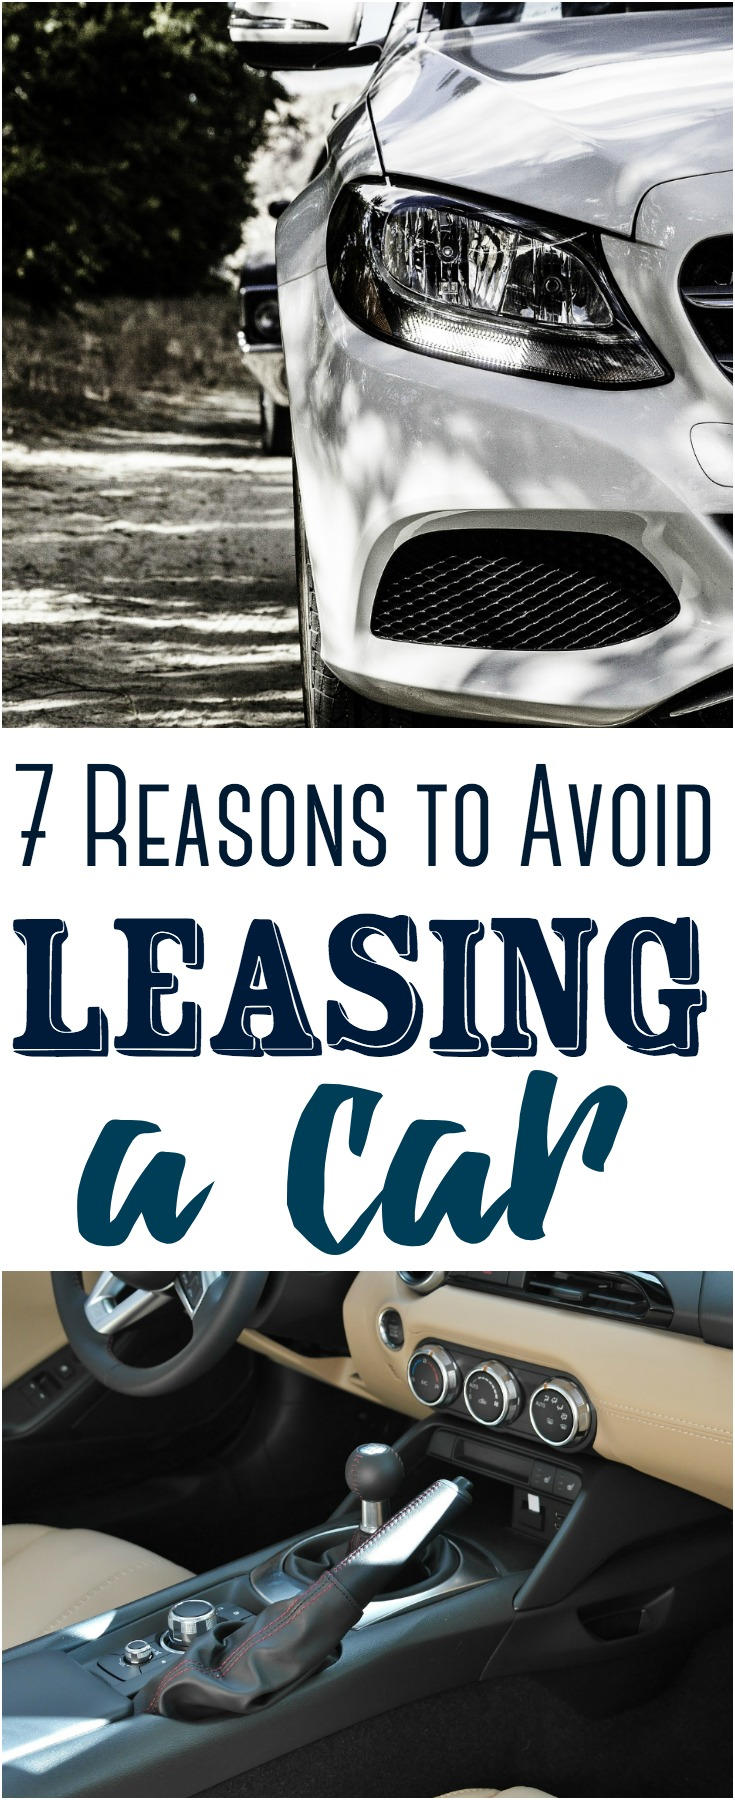 Leasing a car might seem like a wonderful way to get into a new car for a low, up-front cost. In reality, it's a poor money move. Here are several reasons to avoid leasing a car. #money #finance #lease #carlease #savingmoney #budget